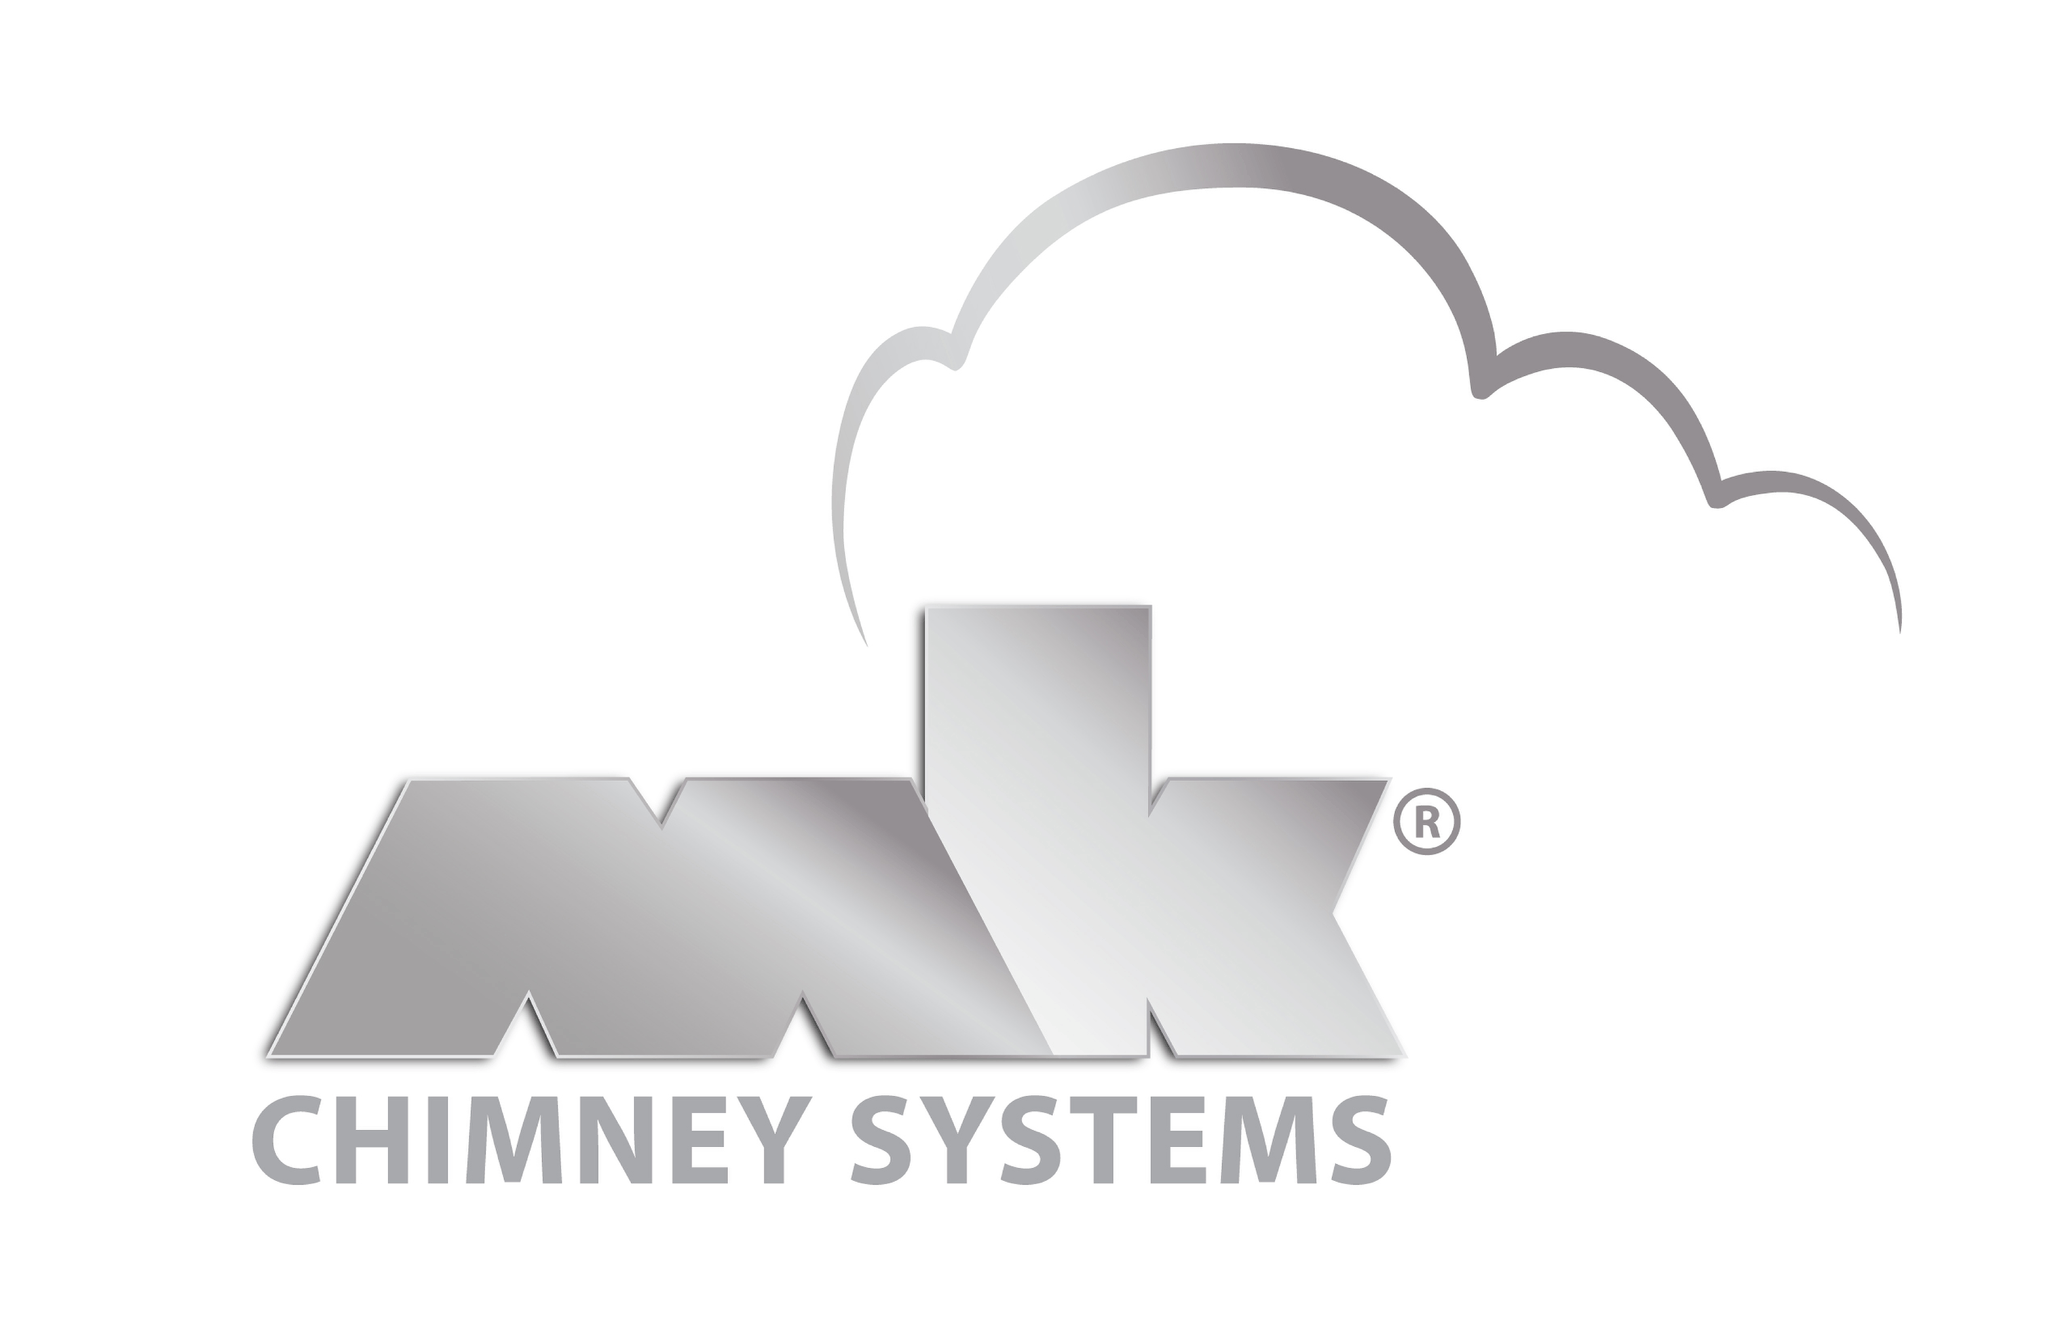 mk chimney systems